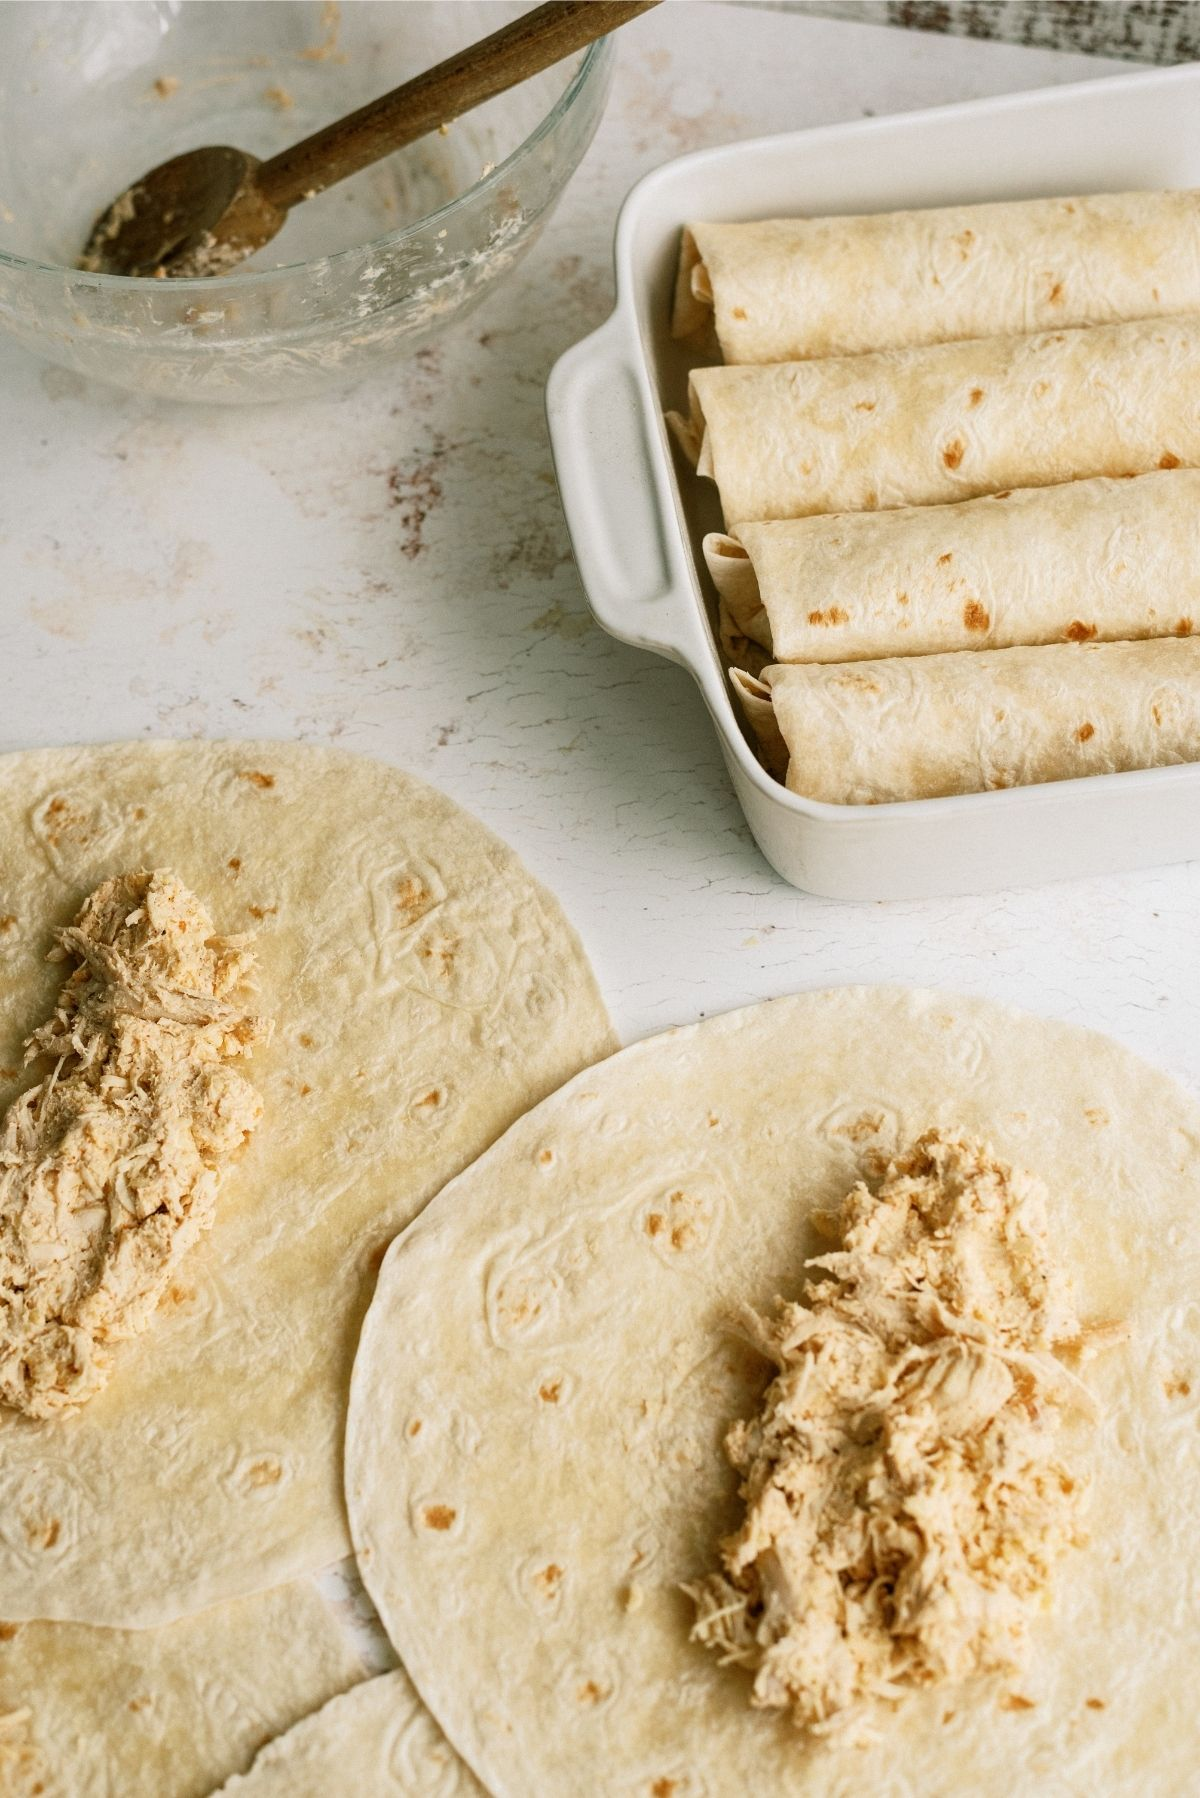 filled tortillas for Chimichangas, some rolled in dish others laying flat